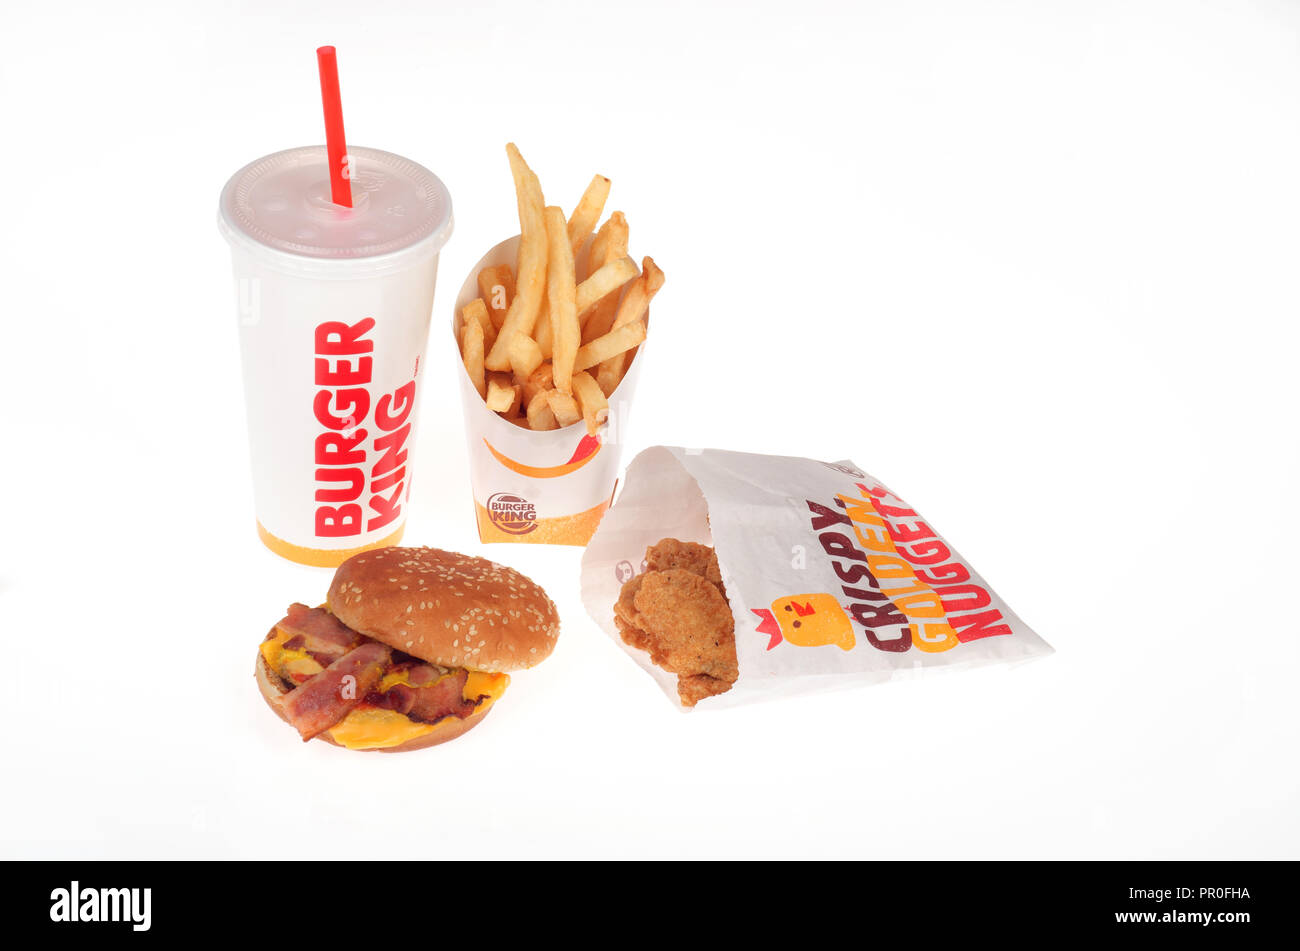 Burger King meal with a bacon cheeseburger, french fries, chicken nuggets and soda pop - Stock Image